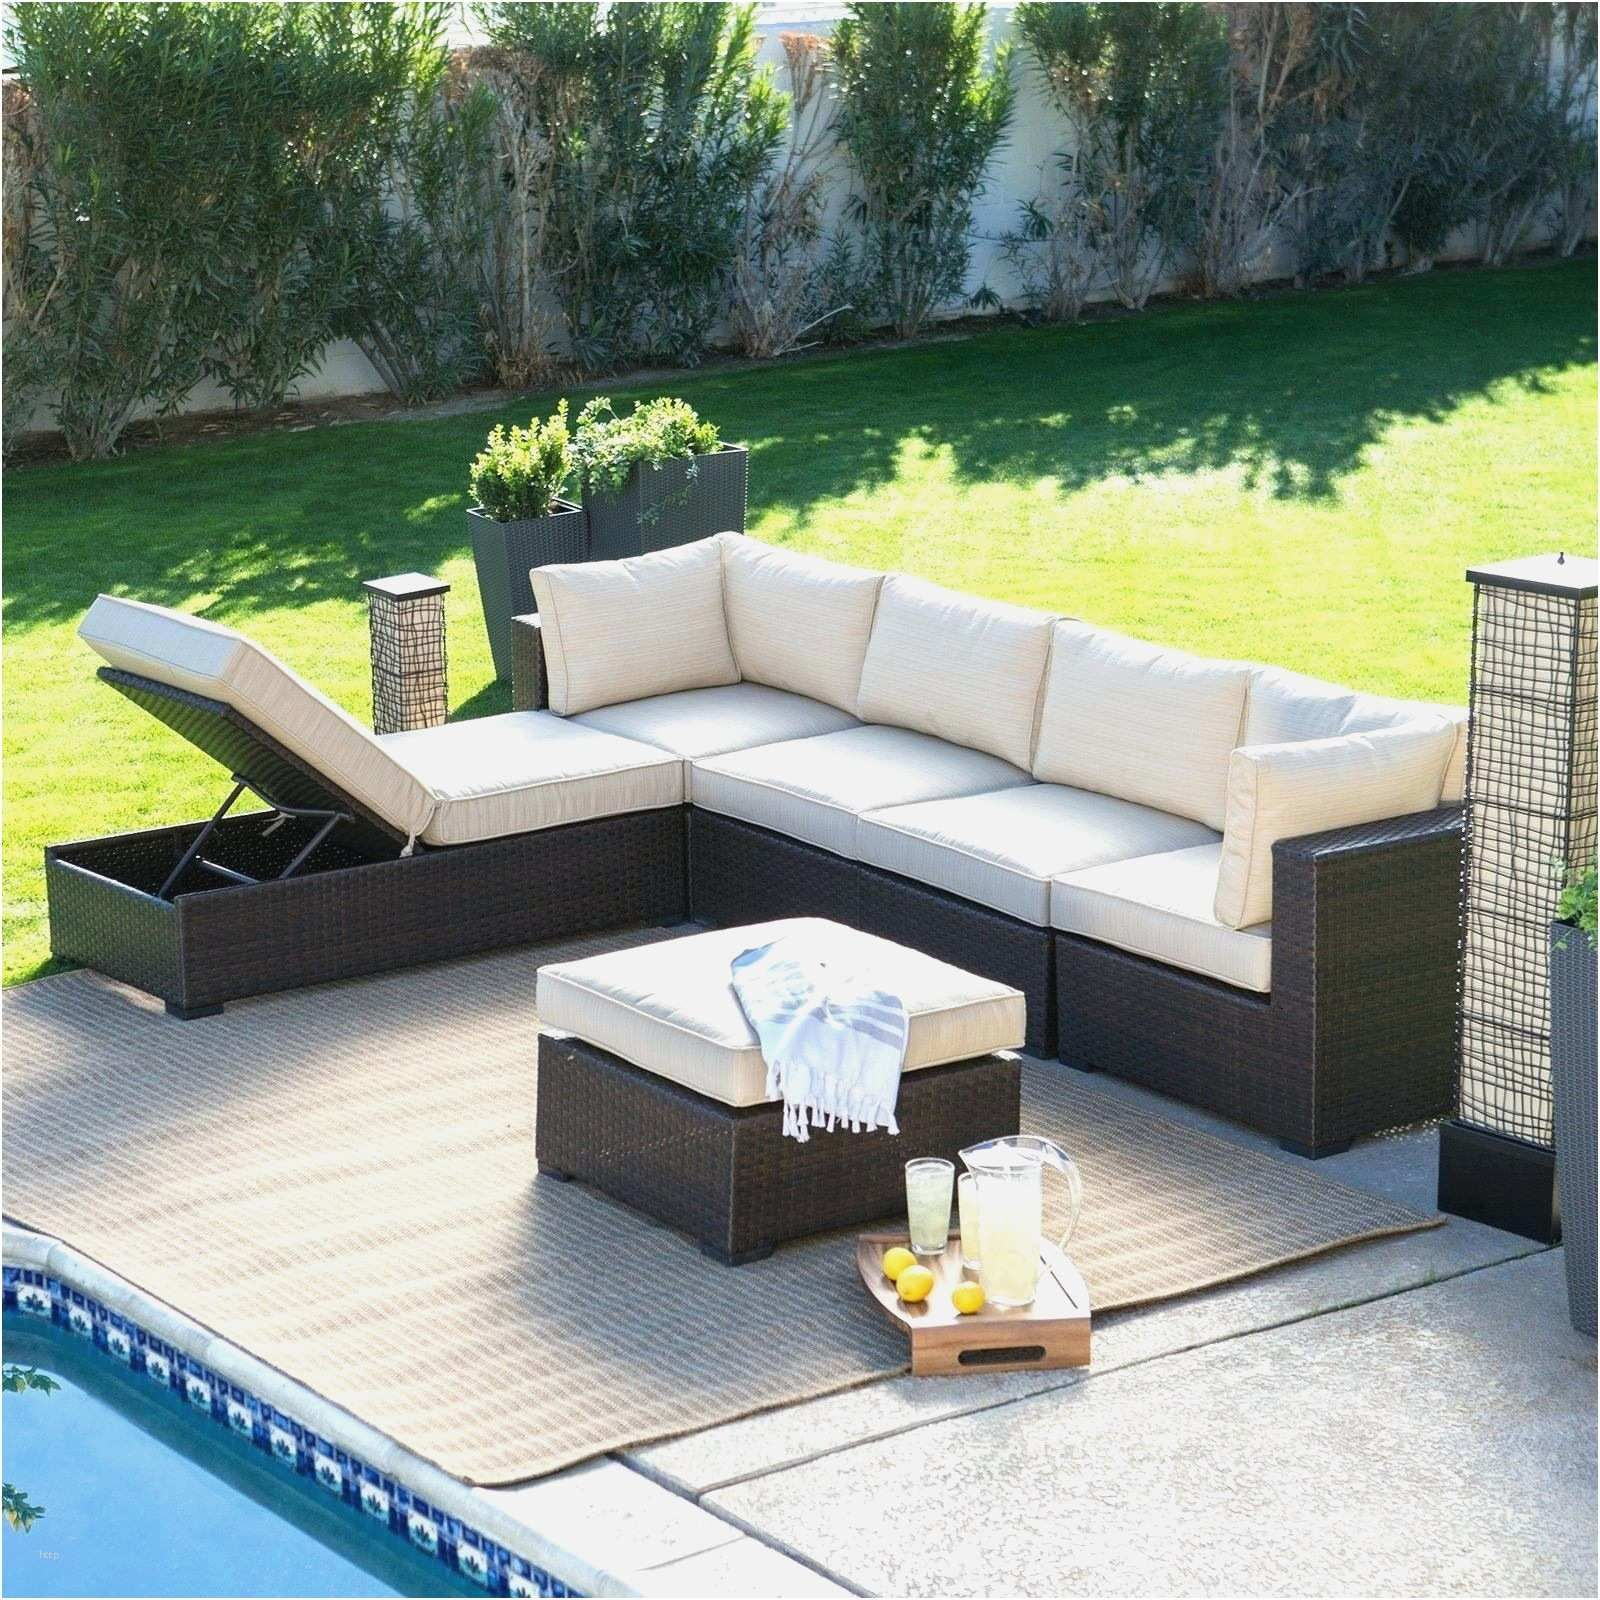 Home Sunset Patio Furniture Lovely 50 Beautiful L